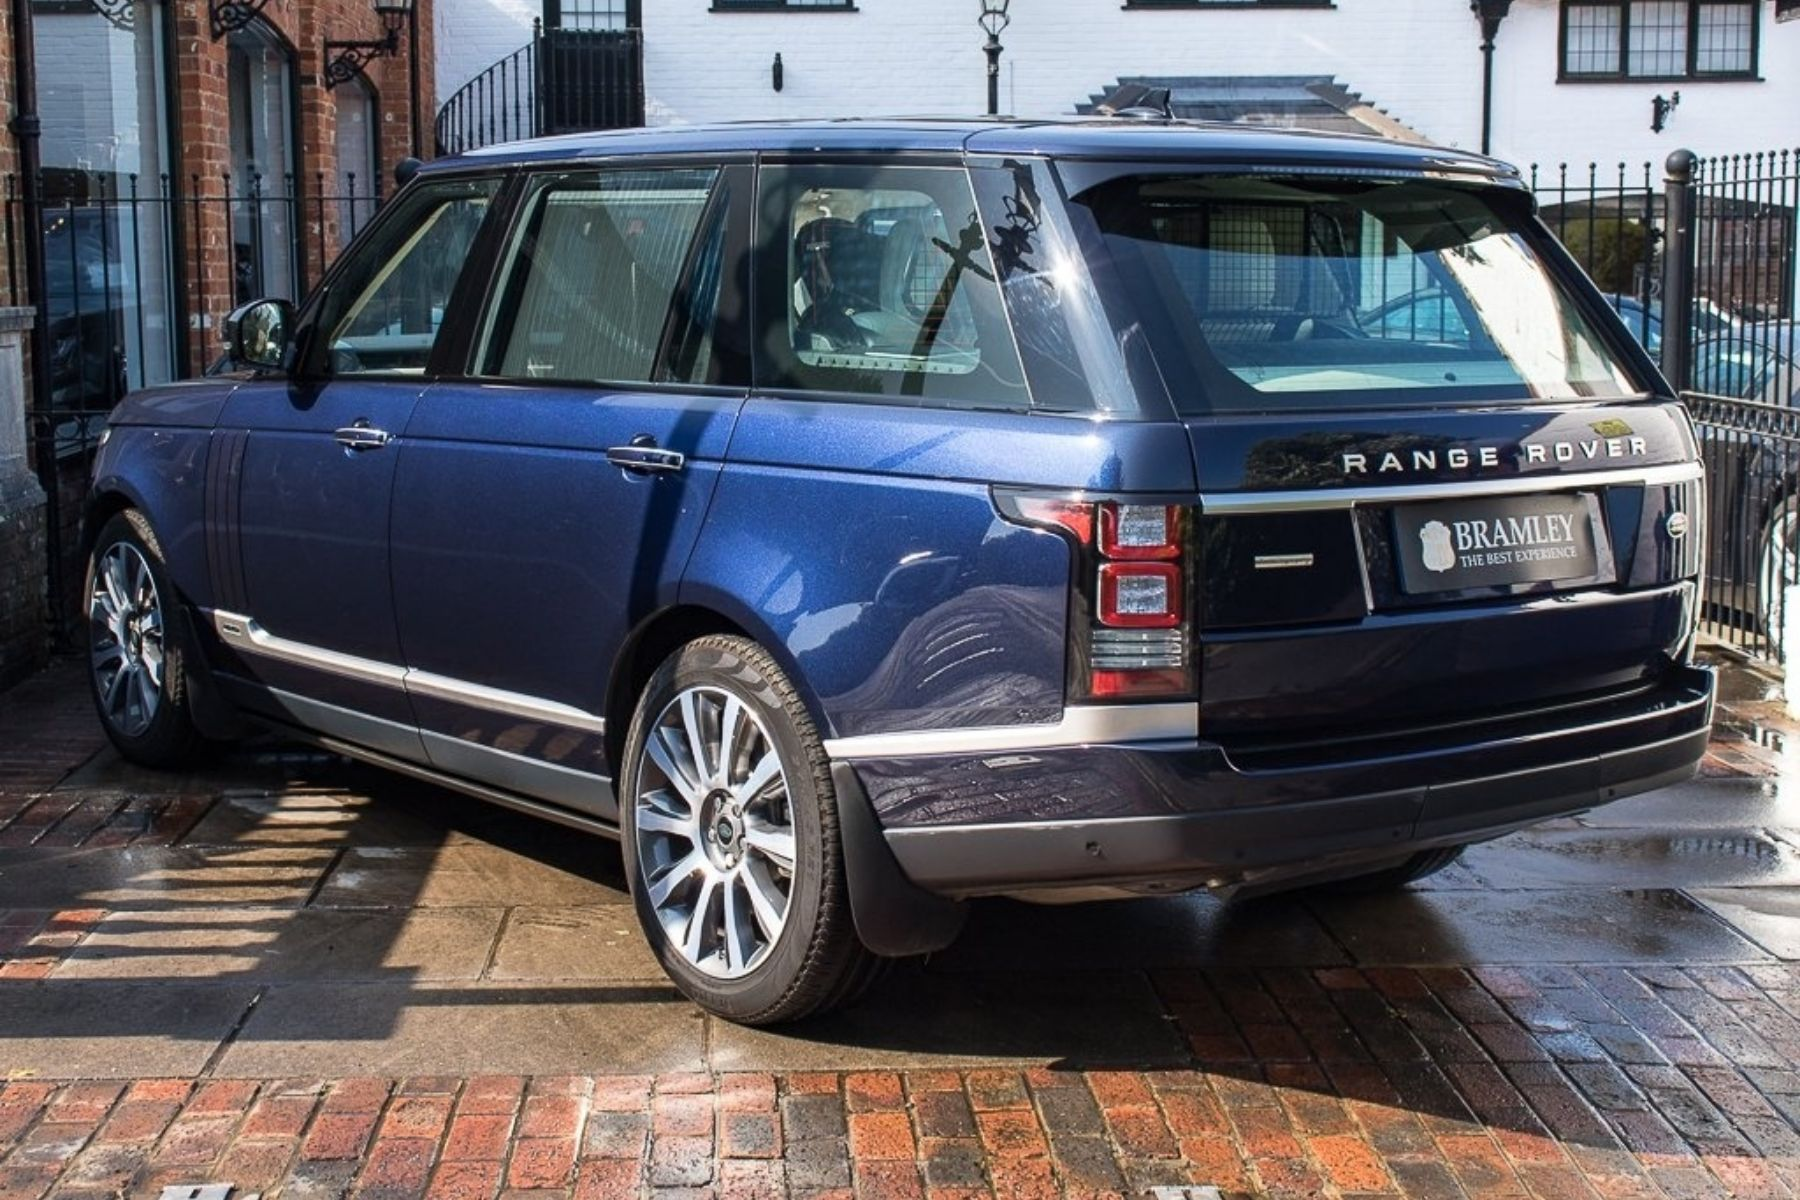 Royal Range Rover for sale Auto Trader